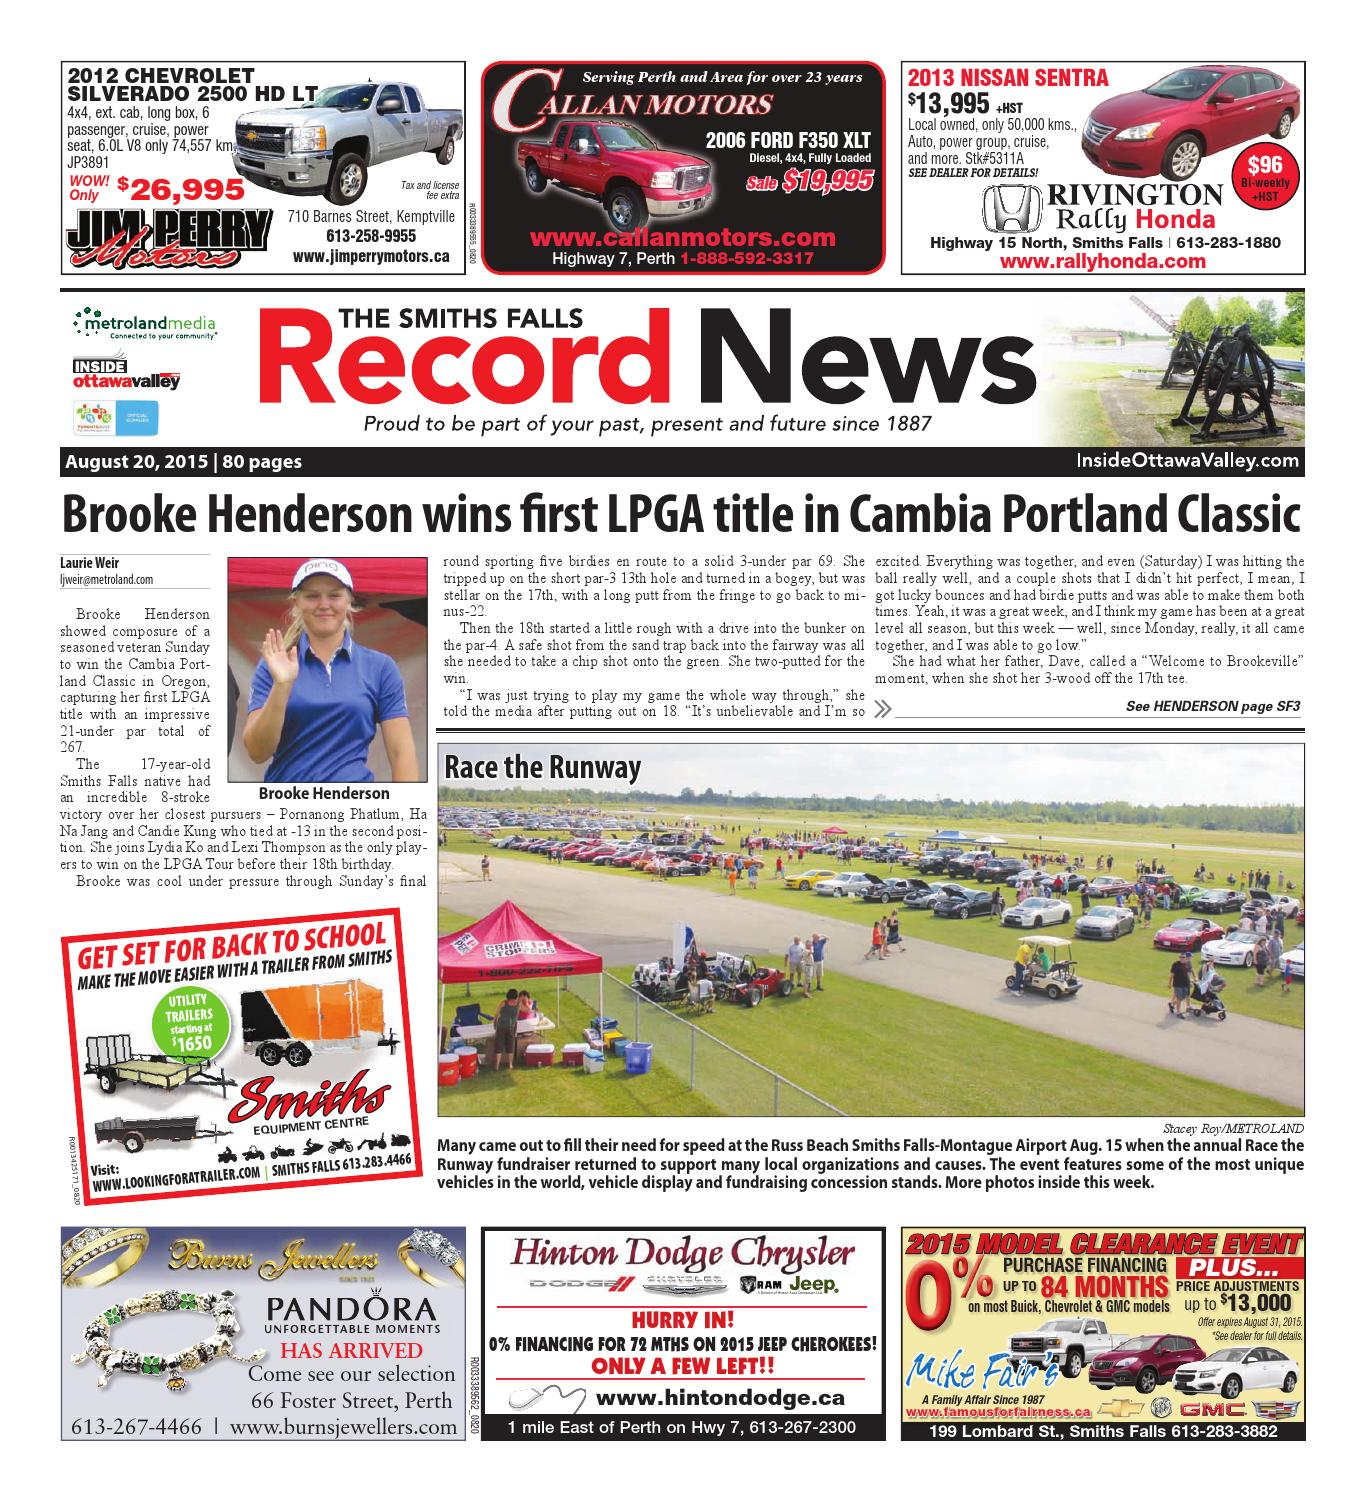 Smithsfalls082015 by Metroland East - Smiths Falls Record News - issuu